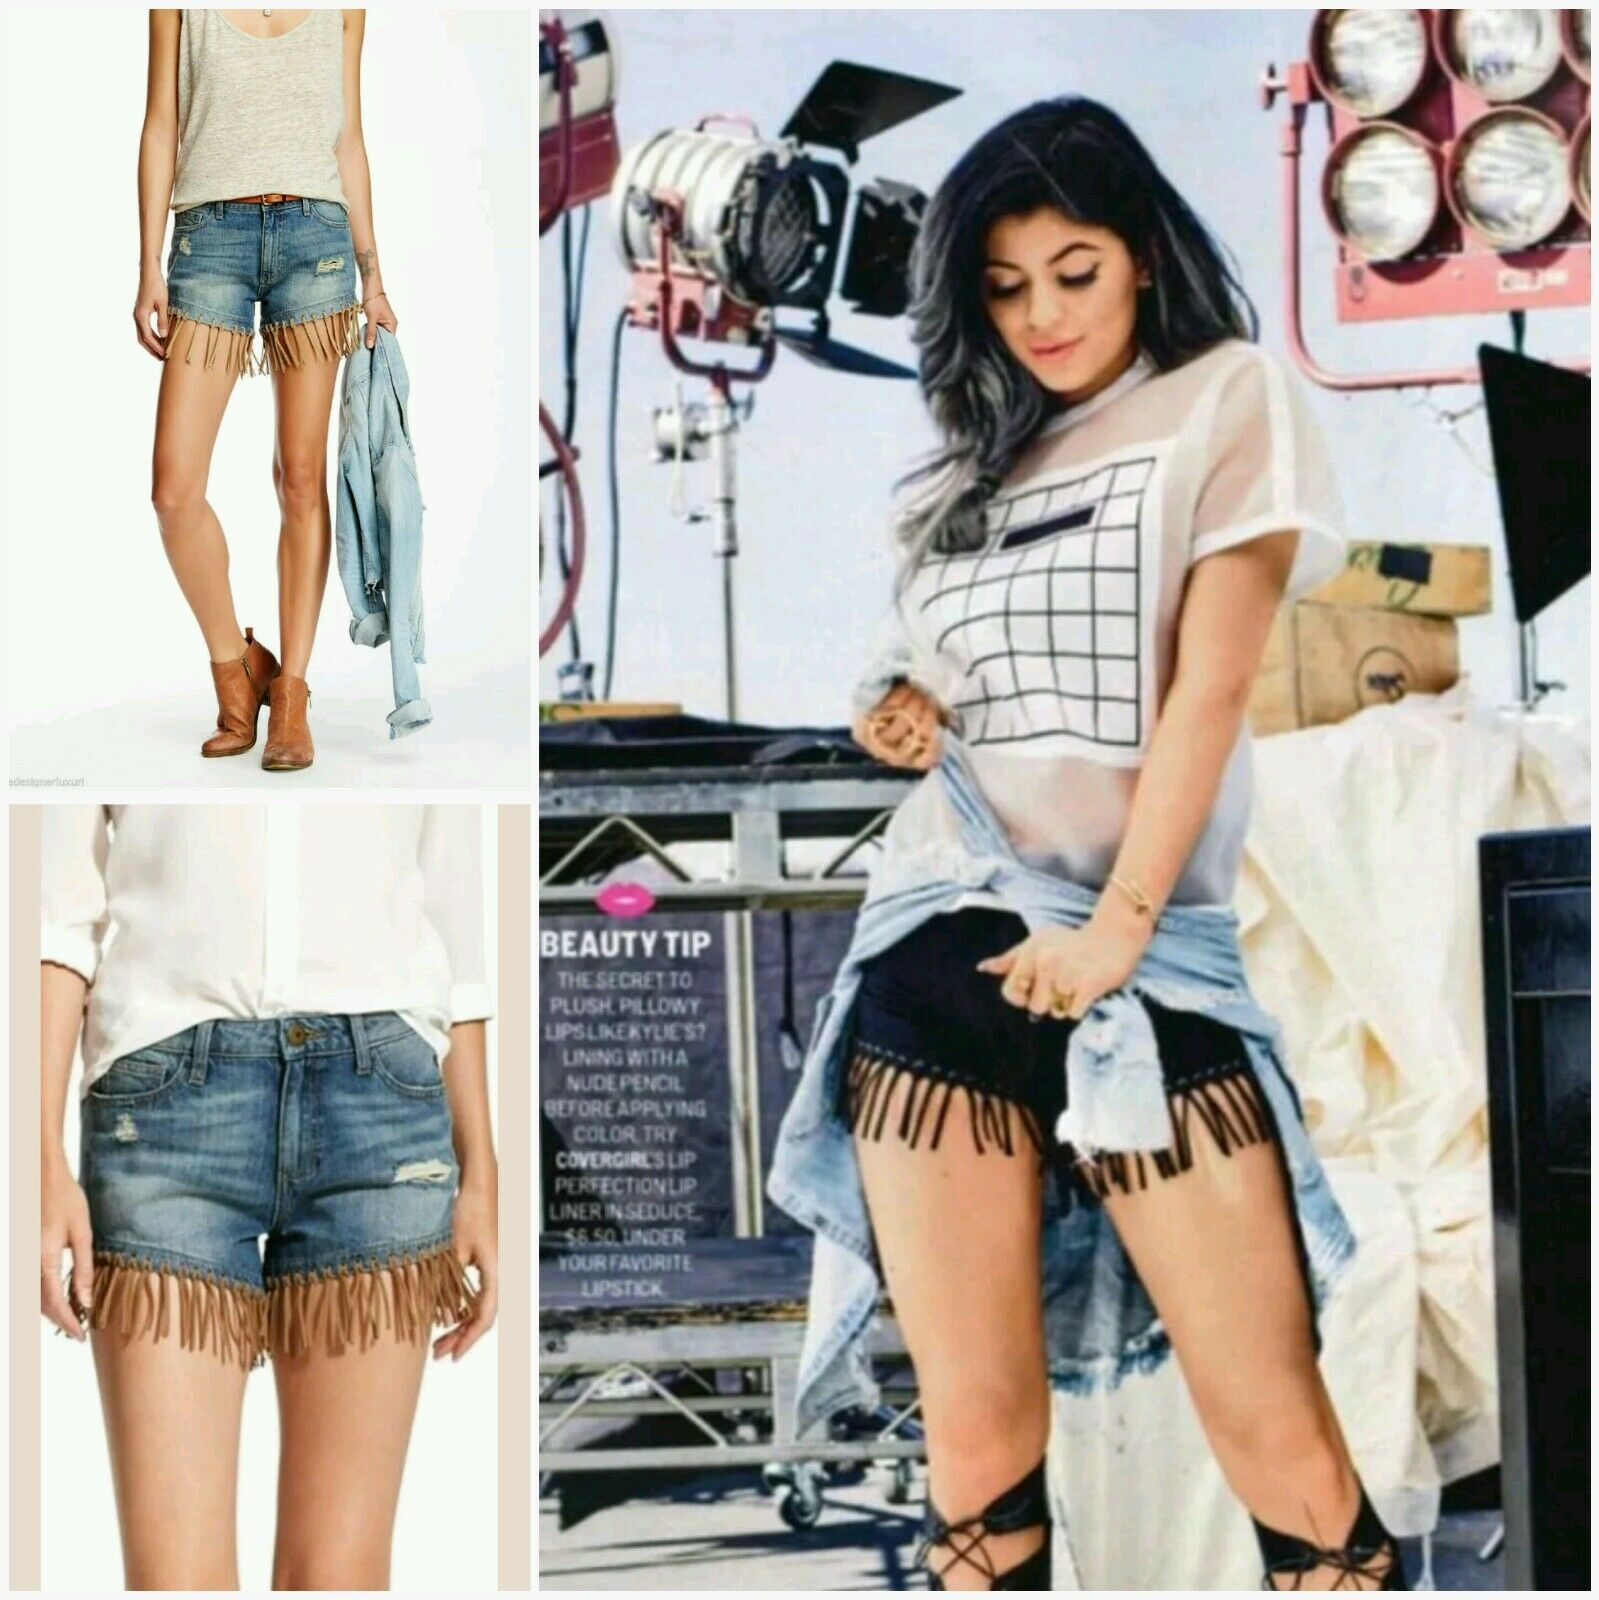 178 DL1961 Seen Kylie Jenner CELEBRITIES Denim Destroyed Fringe Shorts28 M3020